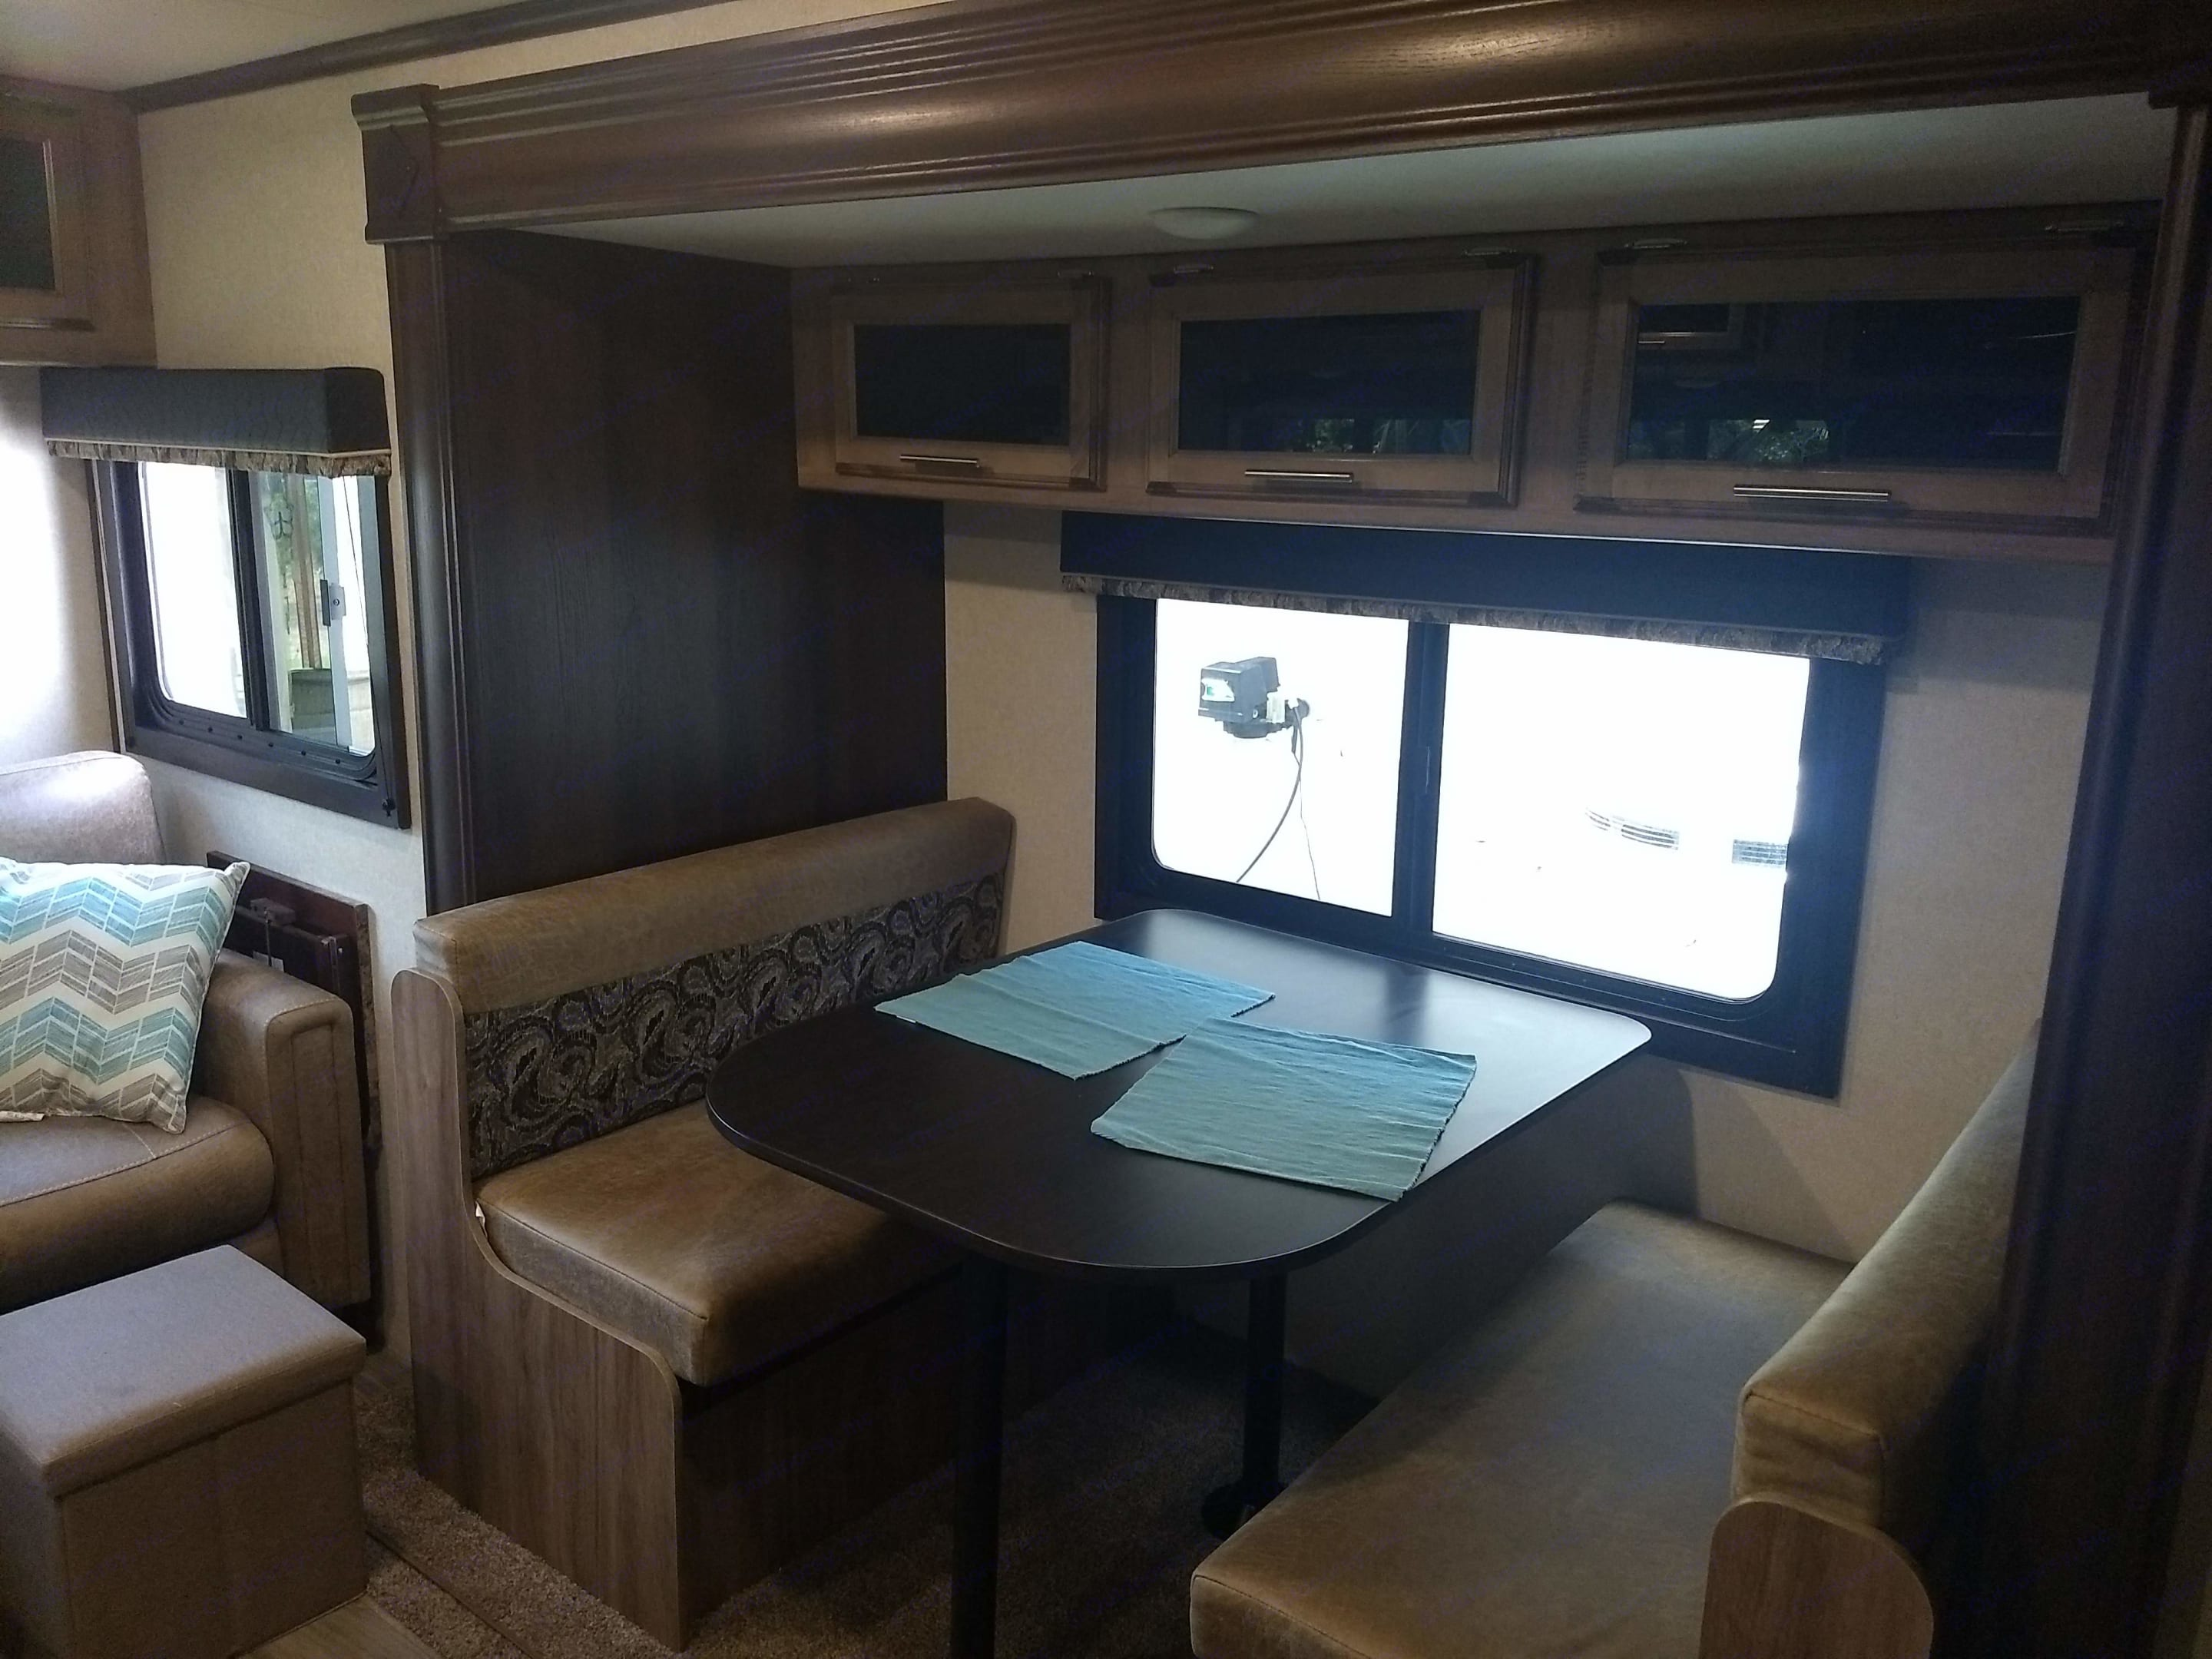 Dining area - Seats 4 very comfortable. Converts to bed. Jayco Jay Feather 2018